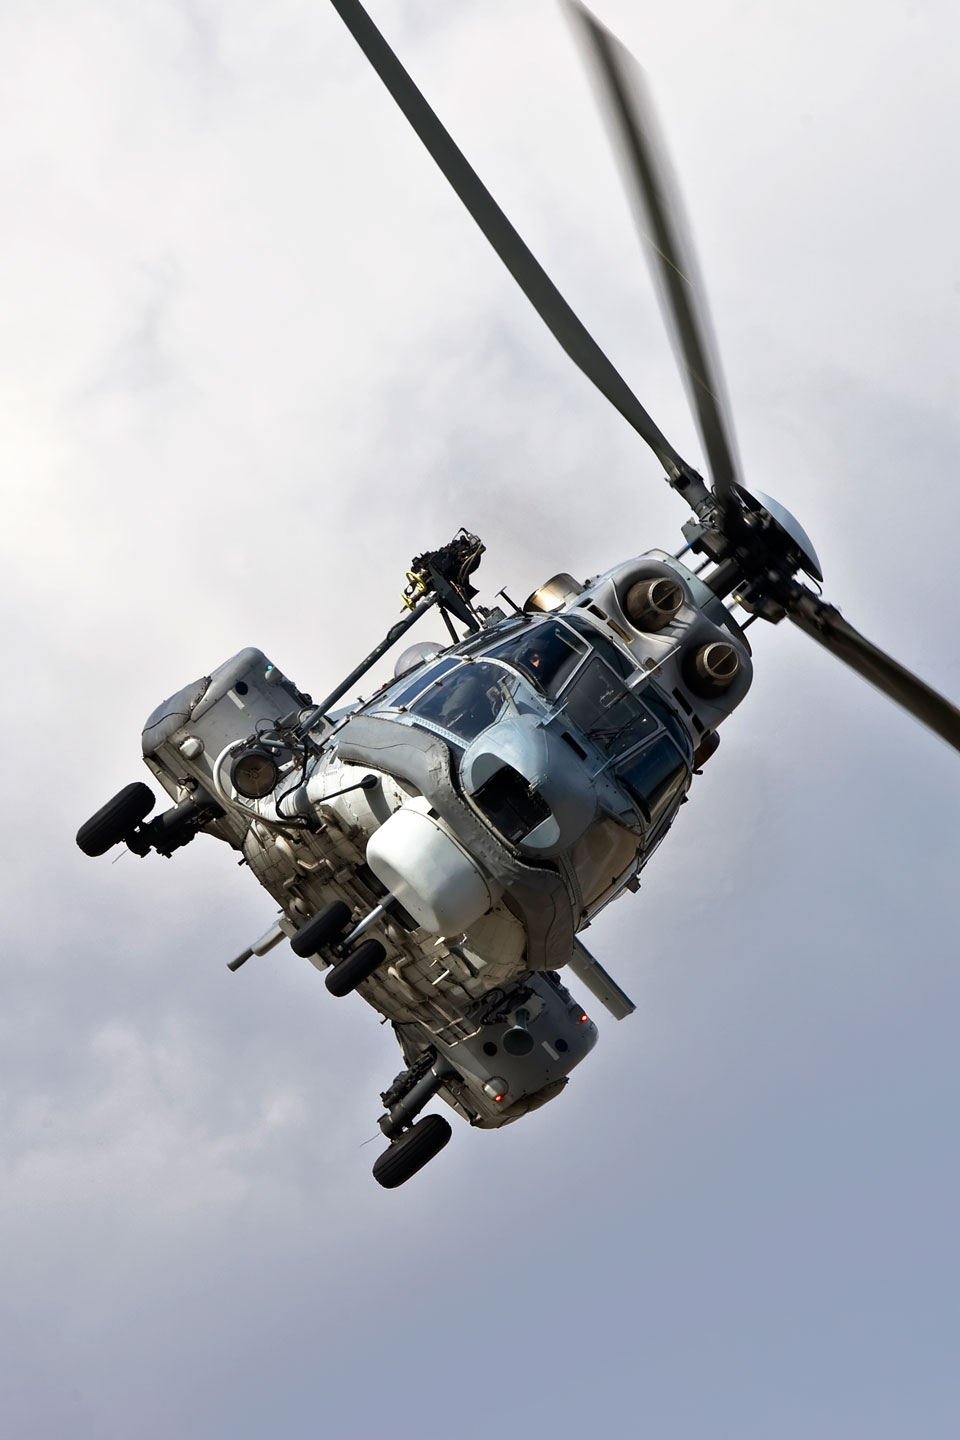 Hellenic Military & Security Multimedia Sp8